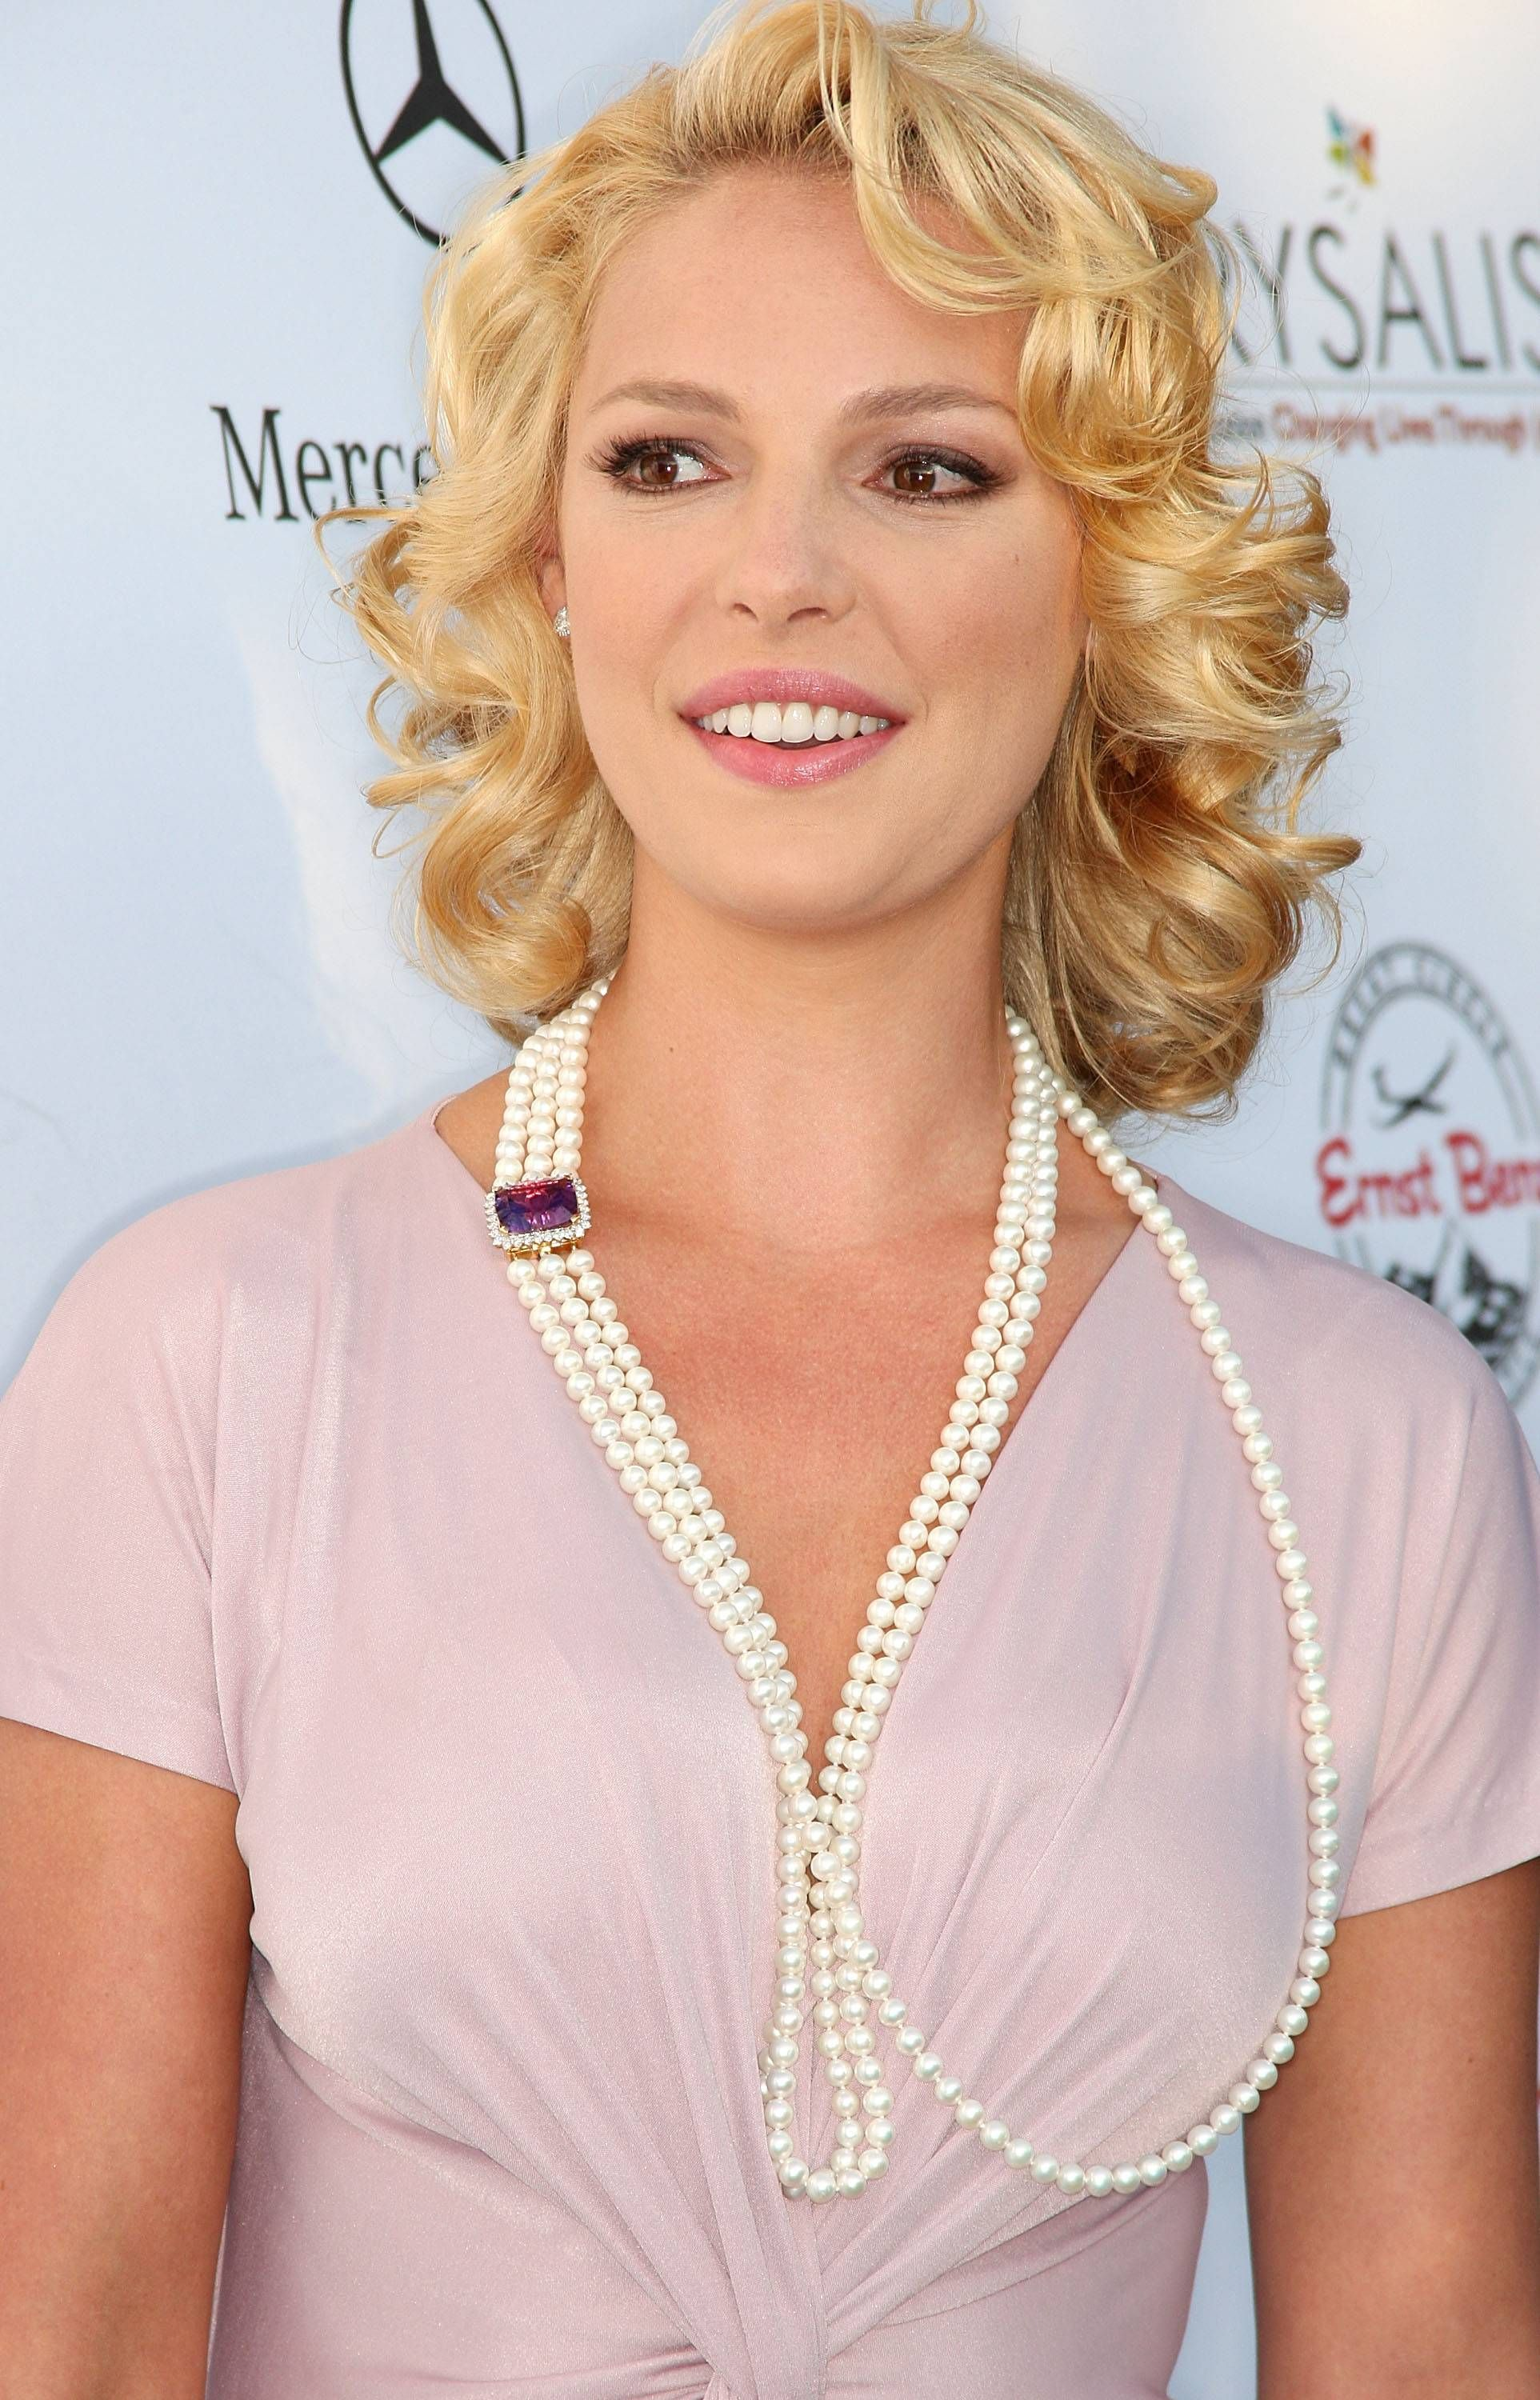 Katherine Heigl Full Hd Wallpaper Download Juan Pollak Download